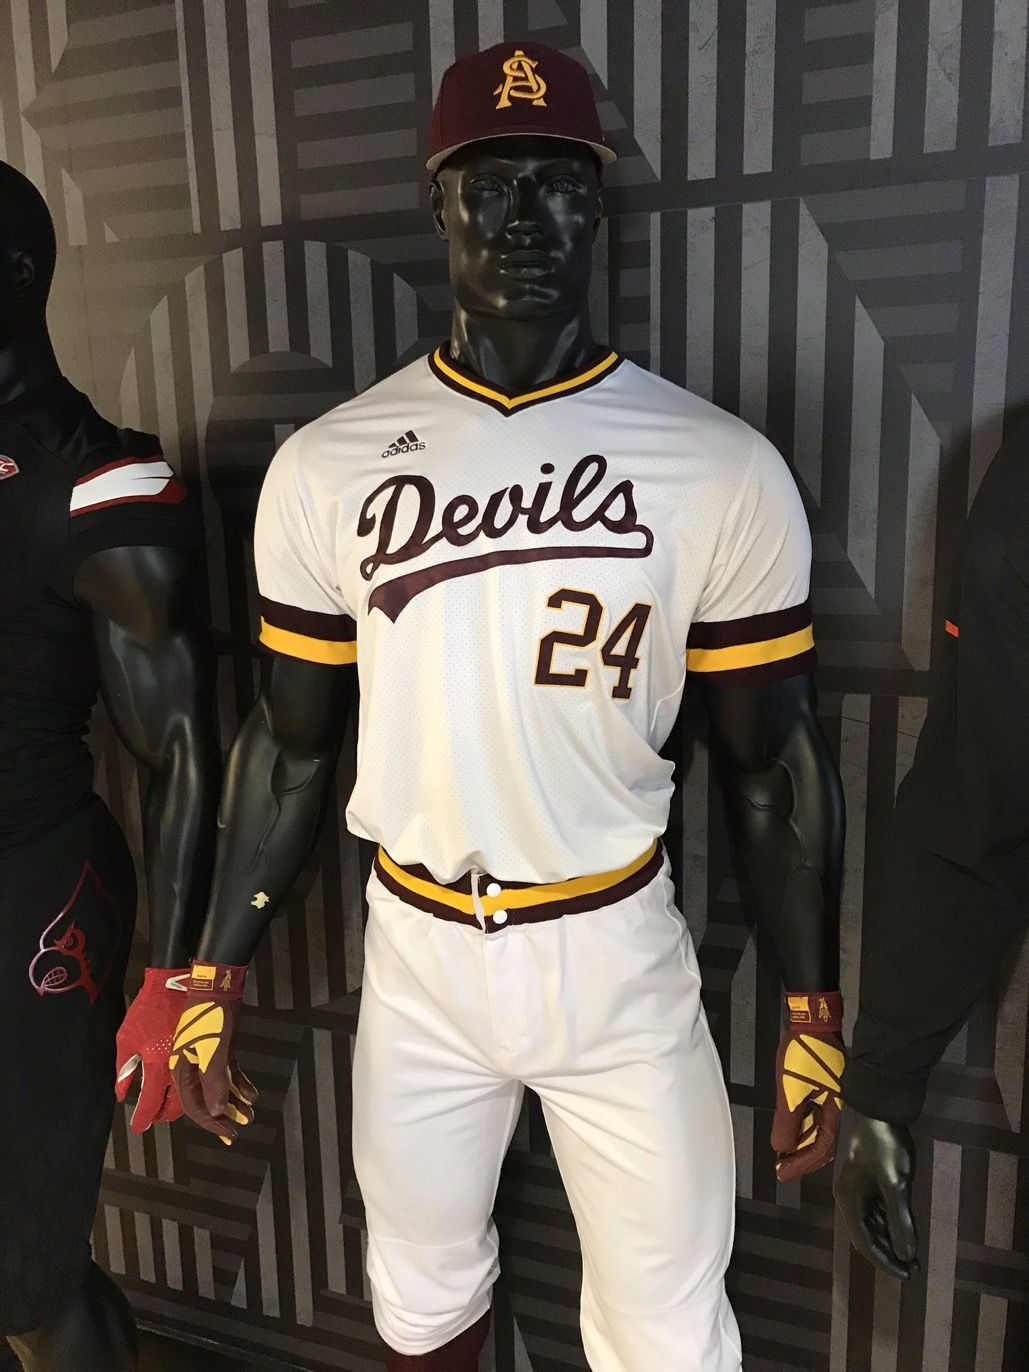 This Barry Bonds Asu Jersey Is Featured Front And Center At The Adidas Us Headquarters Shared By Asubaseball Teamadidas Jersey Asu Barry Bonds